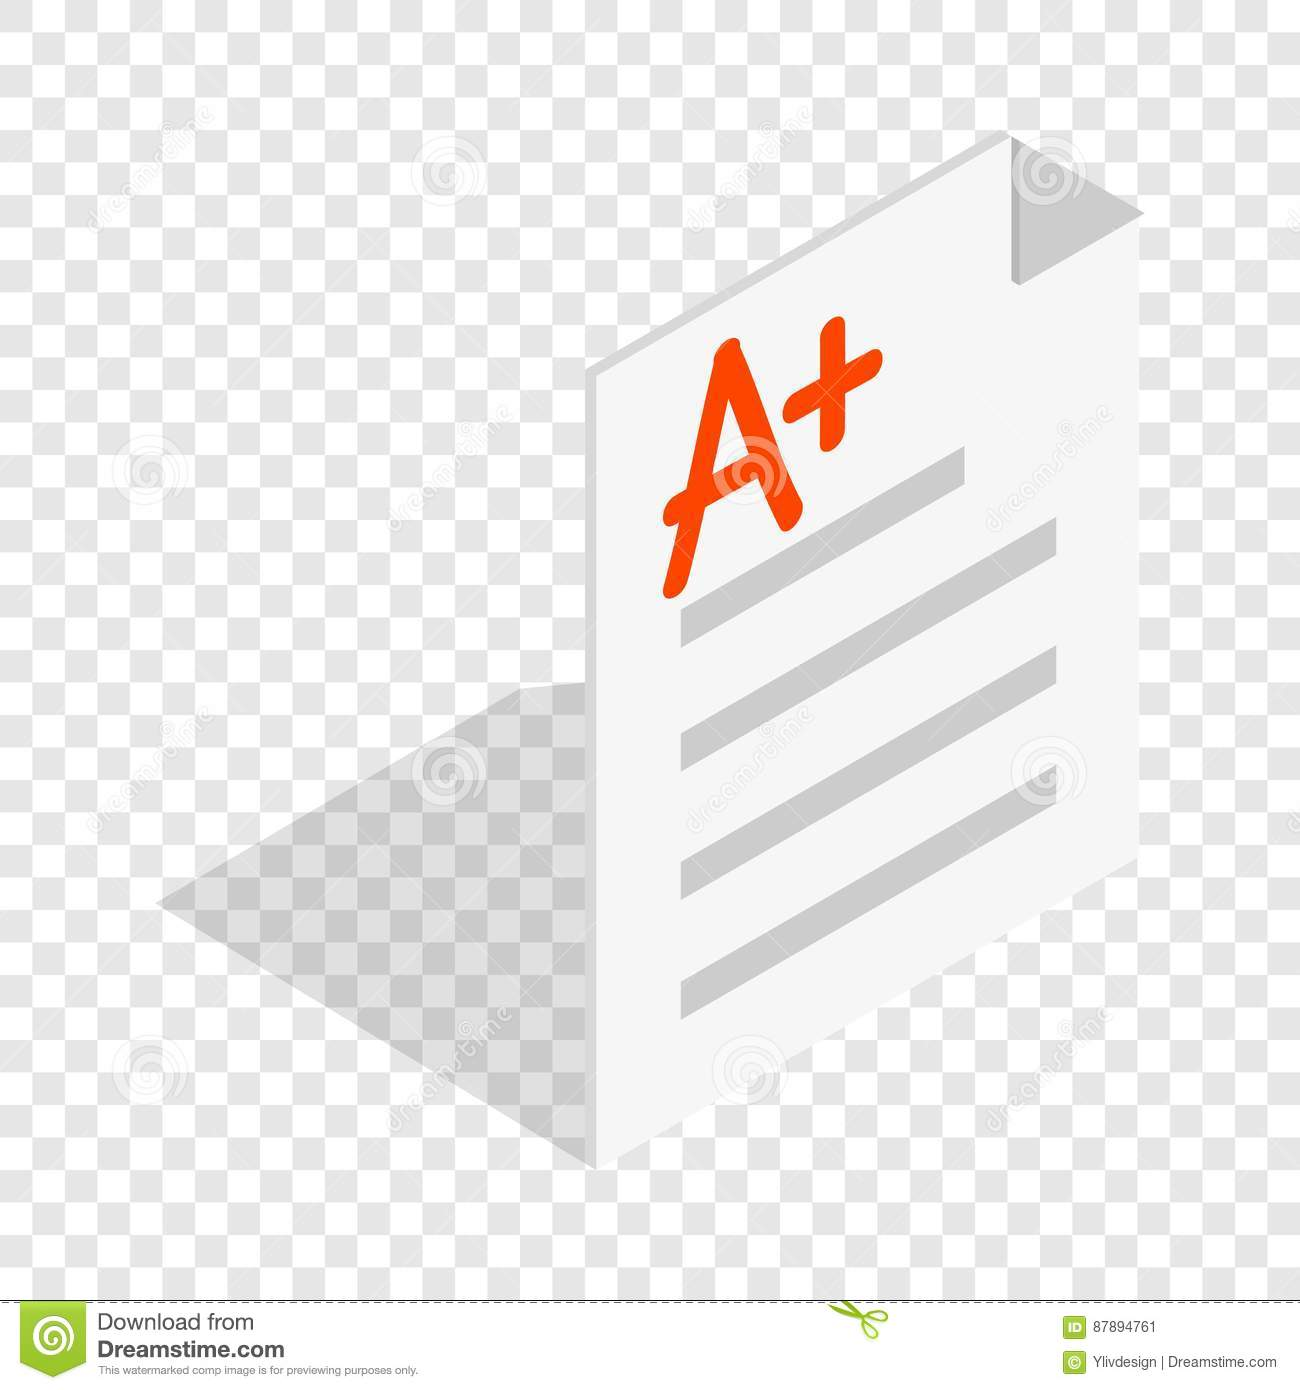 Perfect Grade On A Paper Test Icon Cartoon Vector